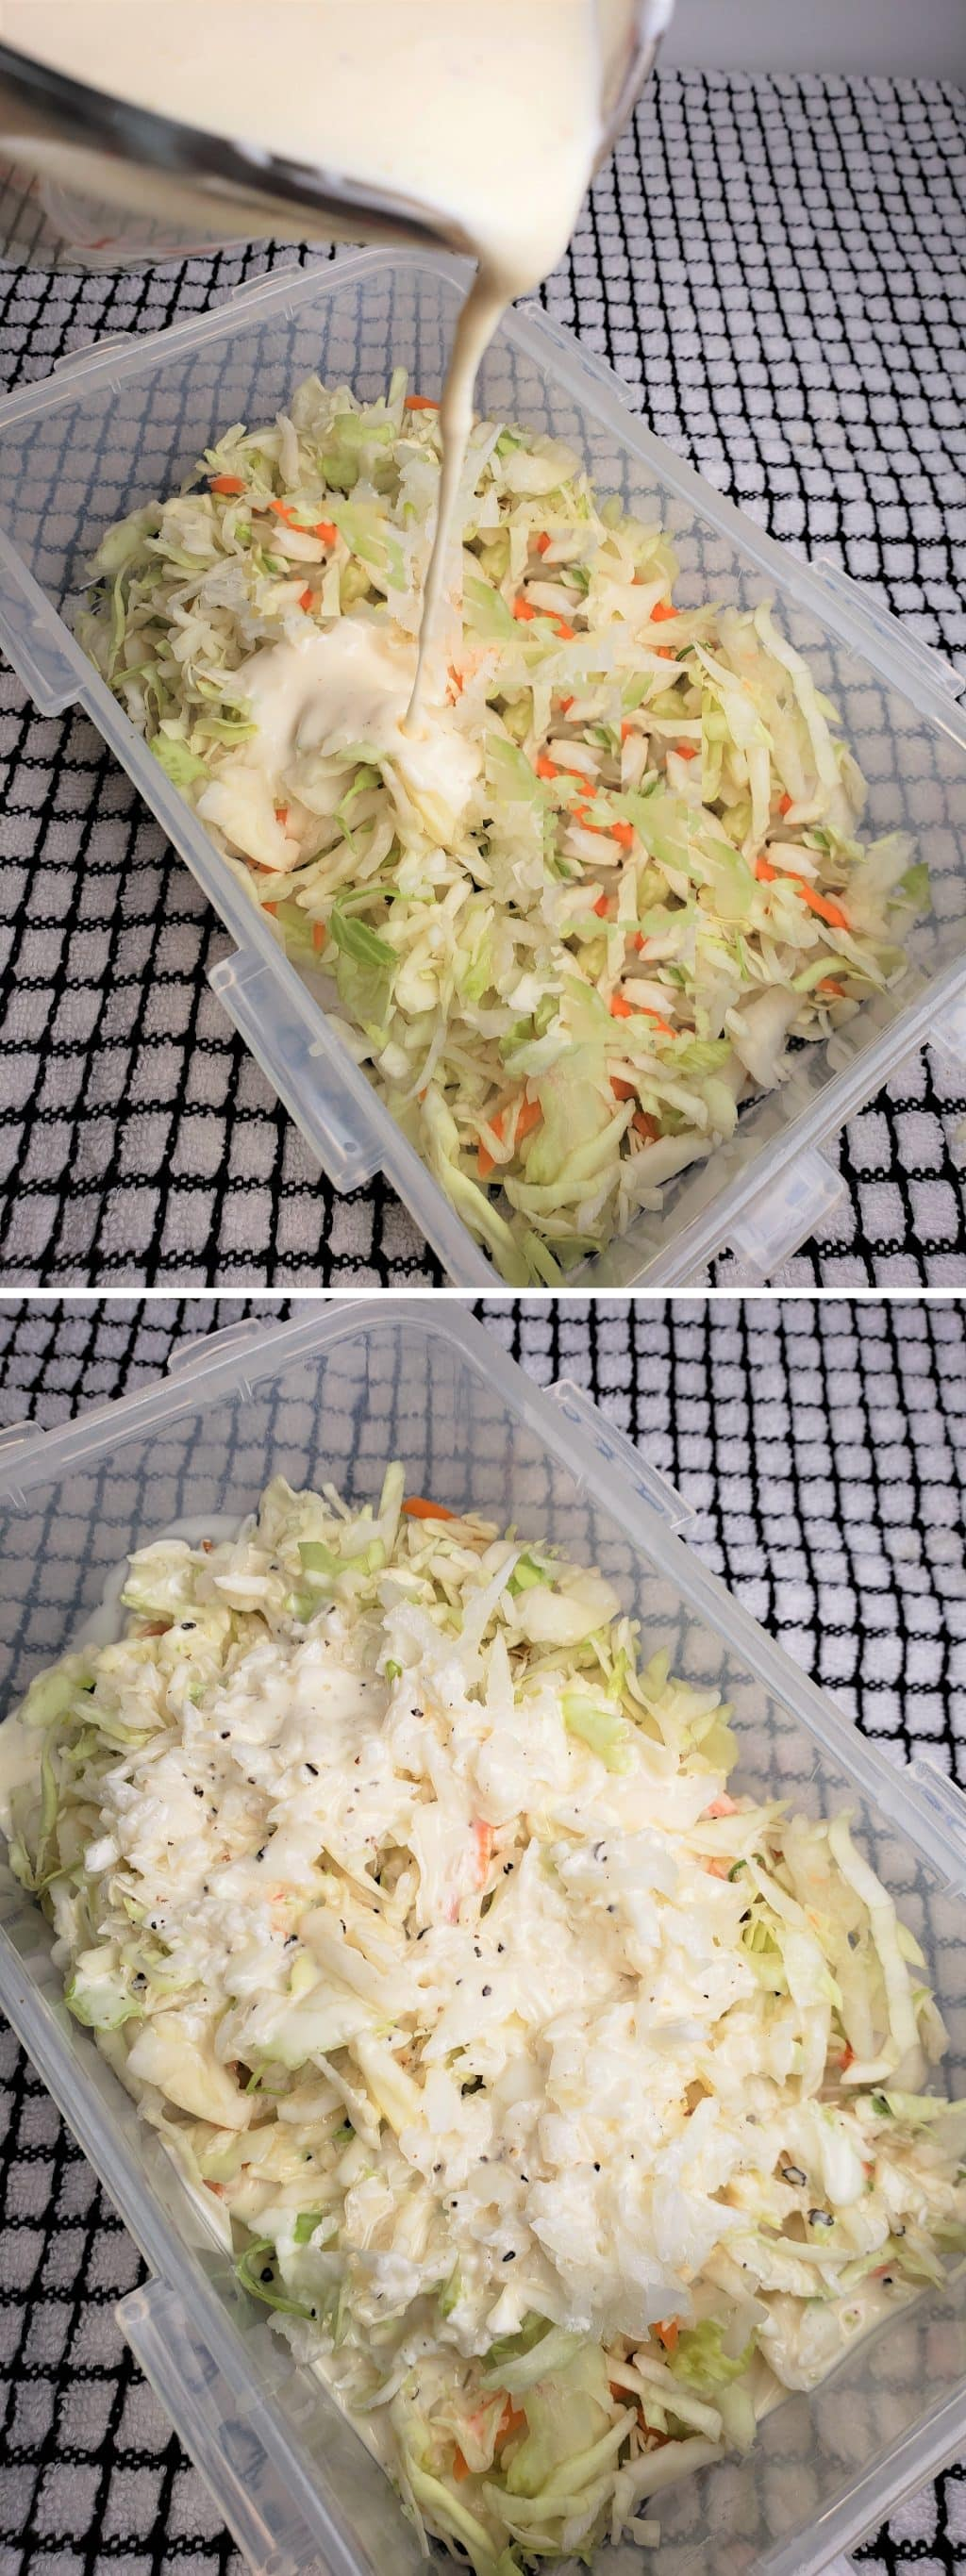 Mix Dressing with Coleslaw